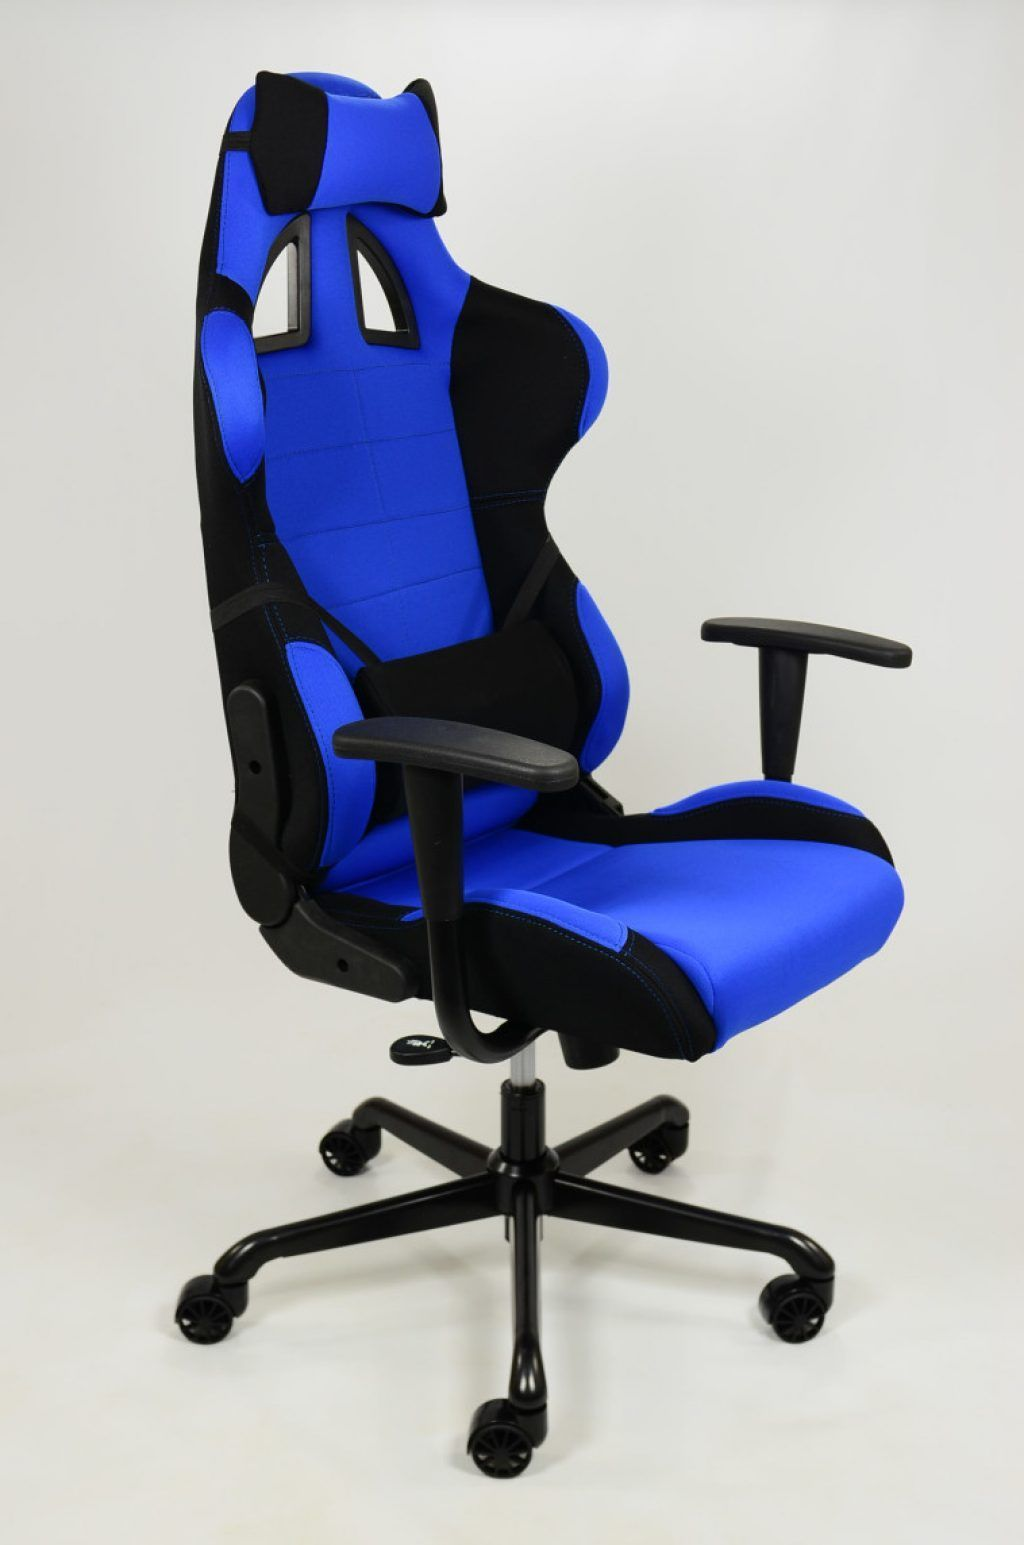 awesome height back blue computer gaming chair with black iron